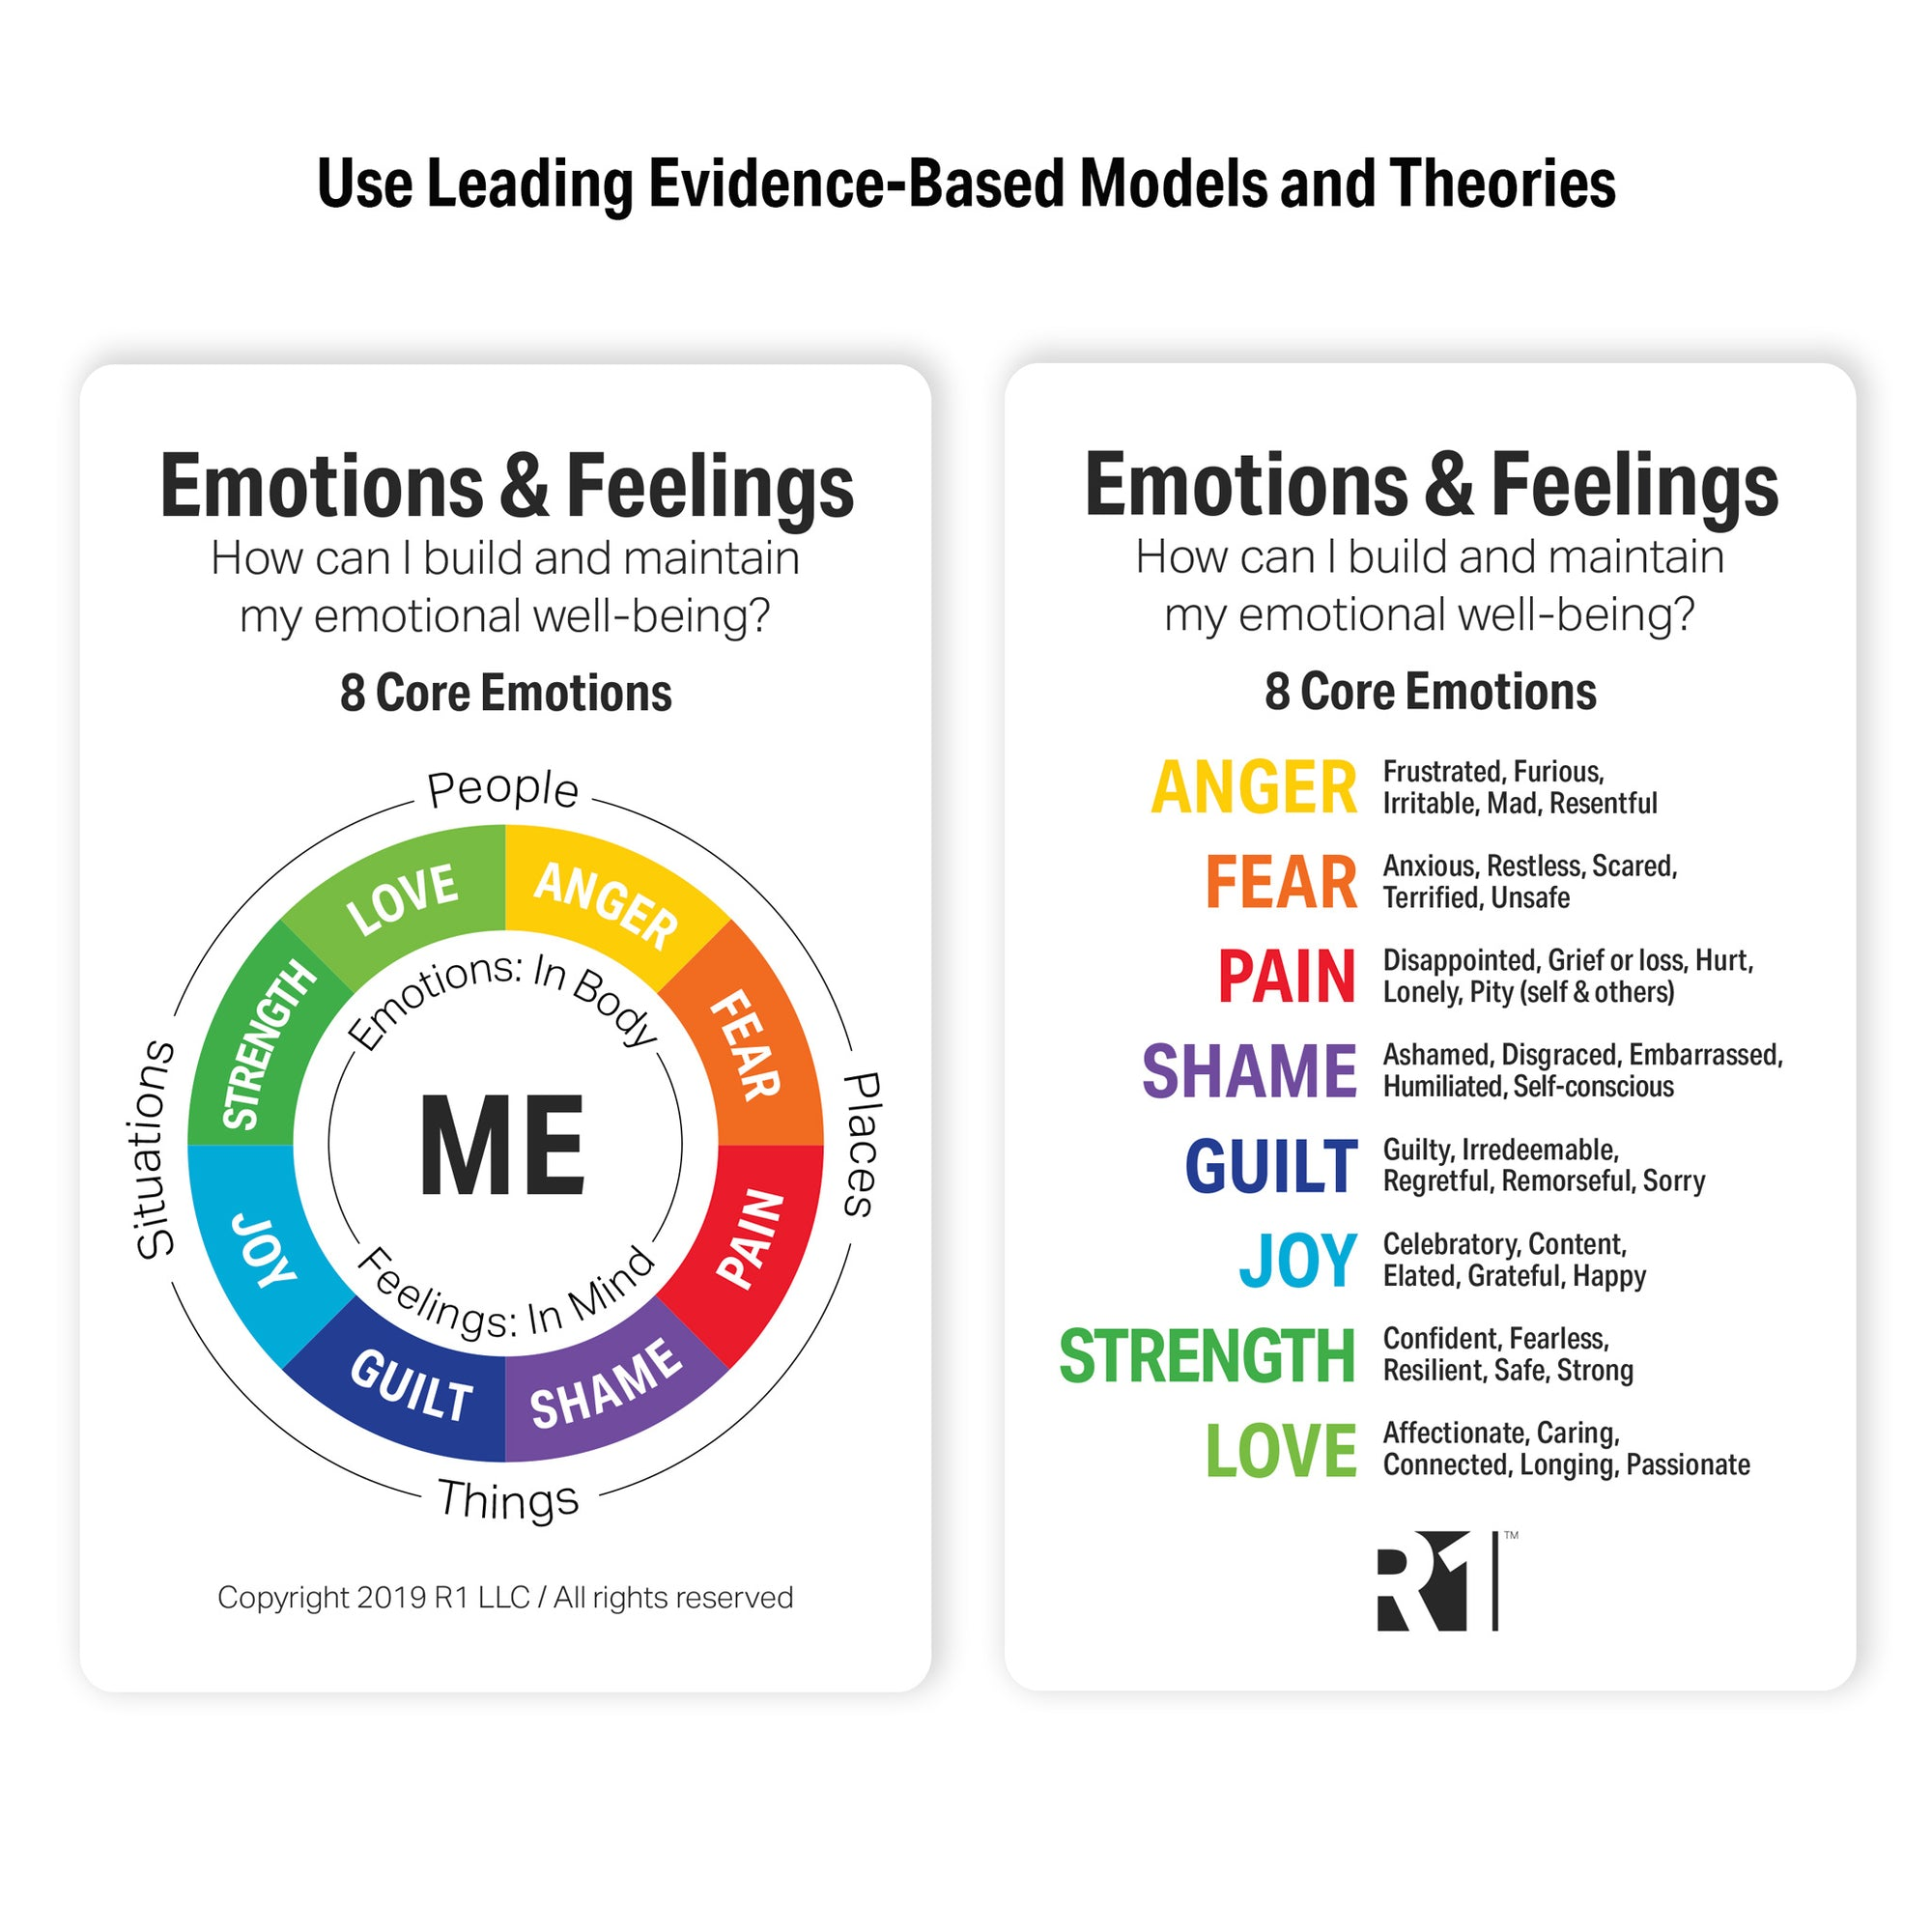 December 18, 1:00–2:30 pm US ET (90 minutes) — Emotions & Feelings Virtual Training